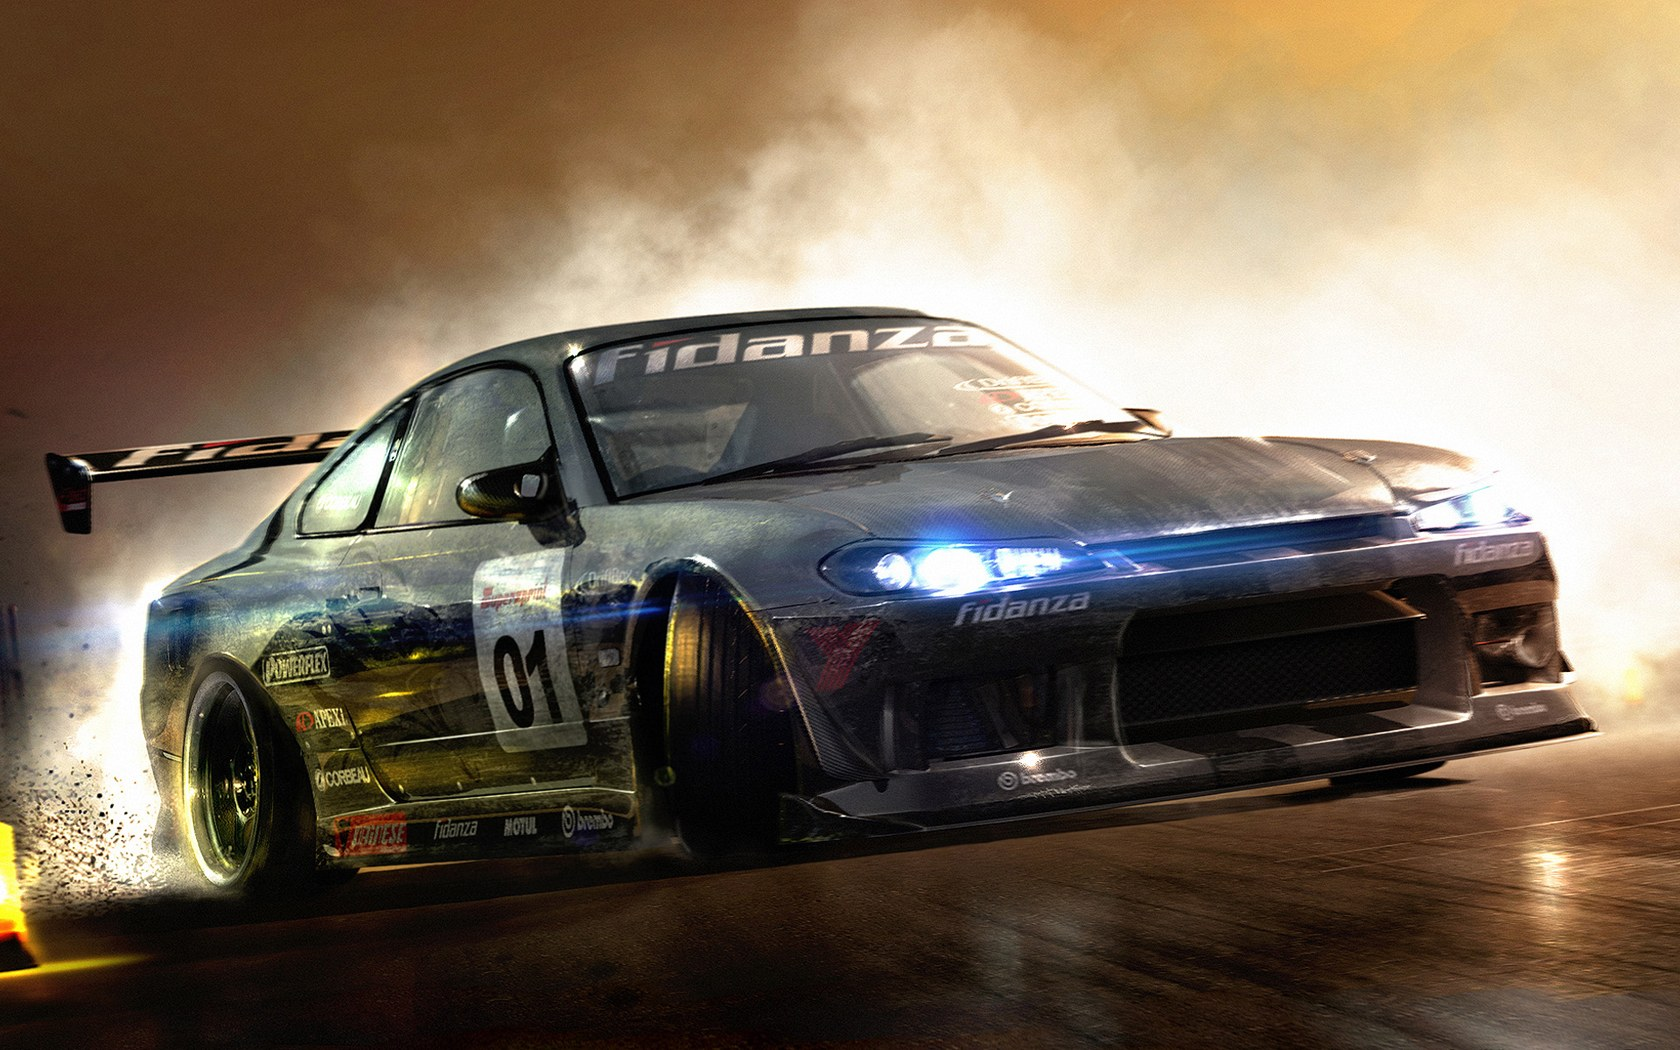 Cool Race Car wallpapers from Car Race Games 1680*1050 NO.24 Wallpaper